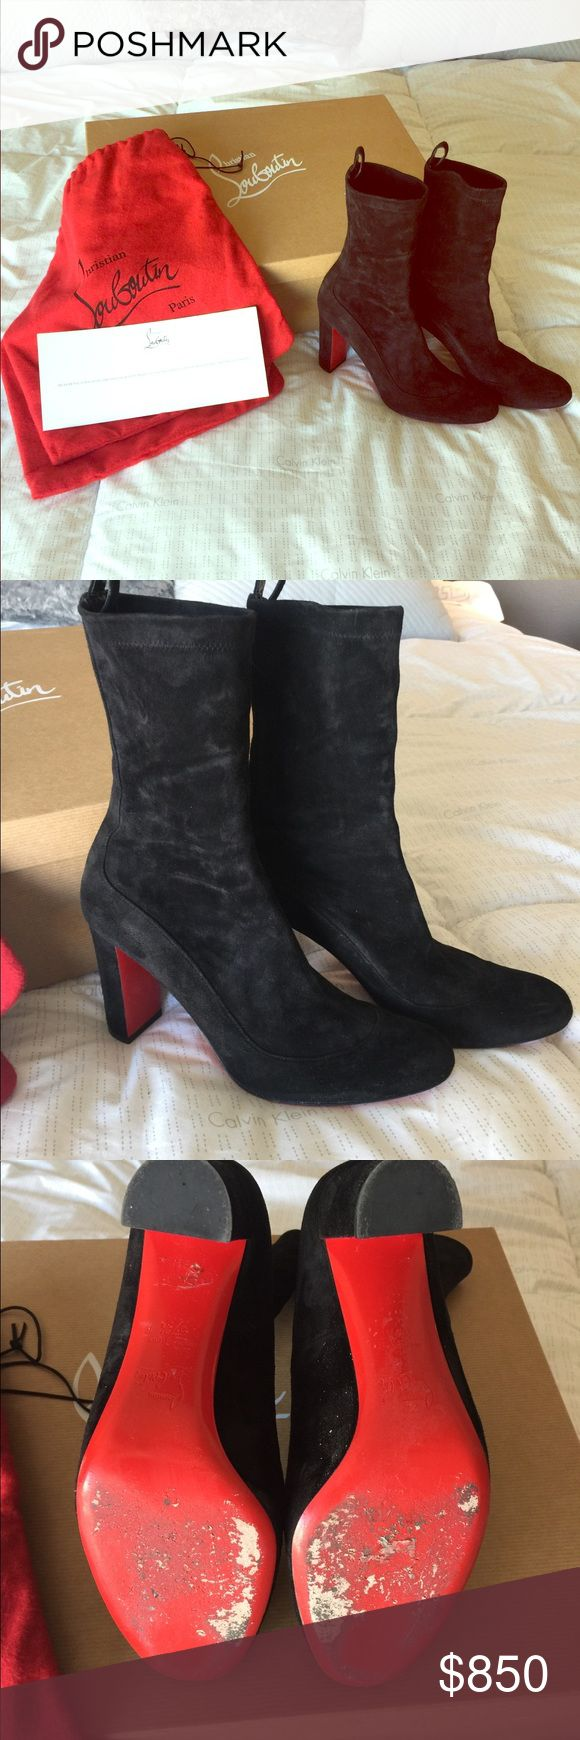 Gena Booties by Christian Loubiton Black suede Booties worn only  once excellent condition love the way the ankle fits nice and form fitting like a sock very classic, chic and classy ! Christian Louboutin Shoes Ankle Boots & Booties